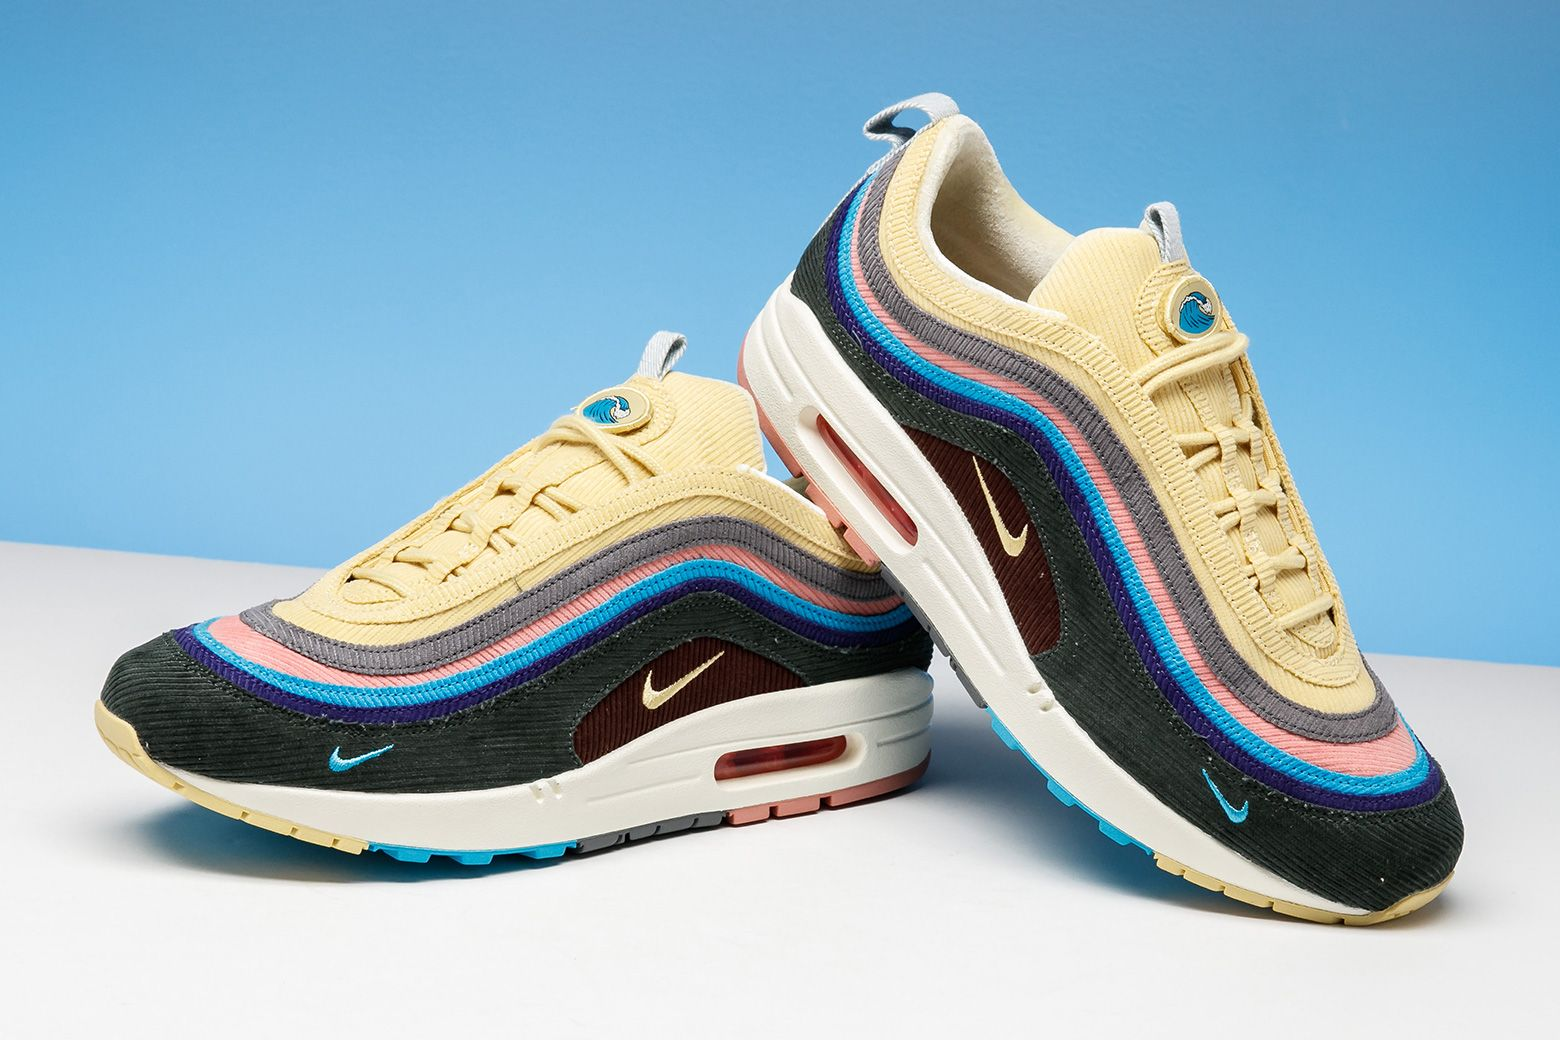 d89f11b2b5 Sneaker Trivia: Who collaborated with Nike on this Air Max 1/97 hybrid?